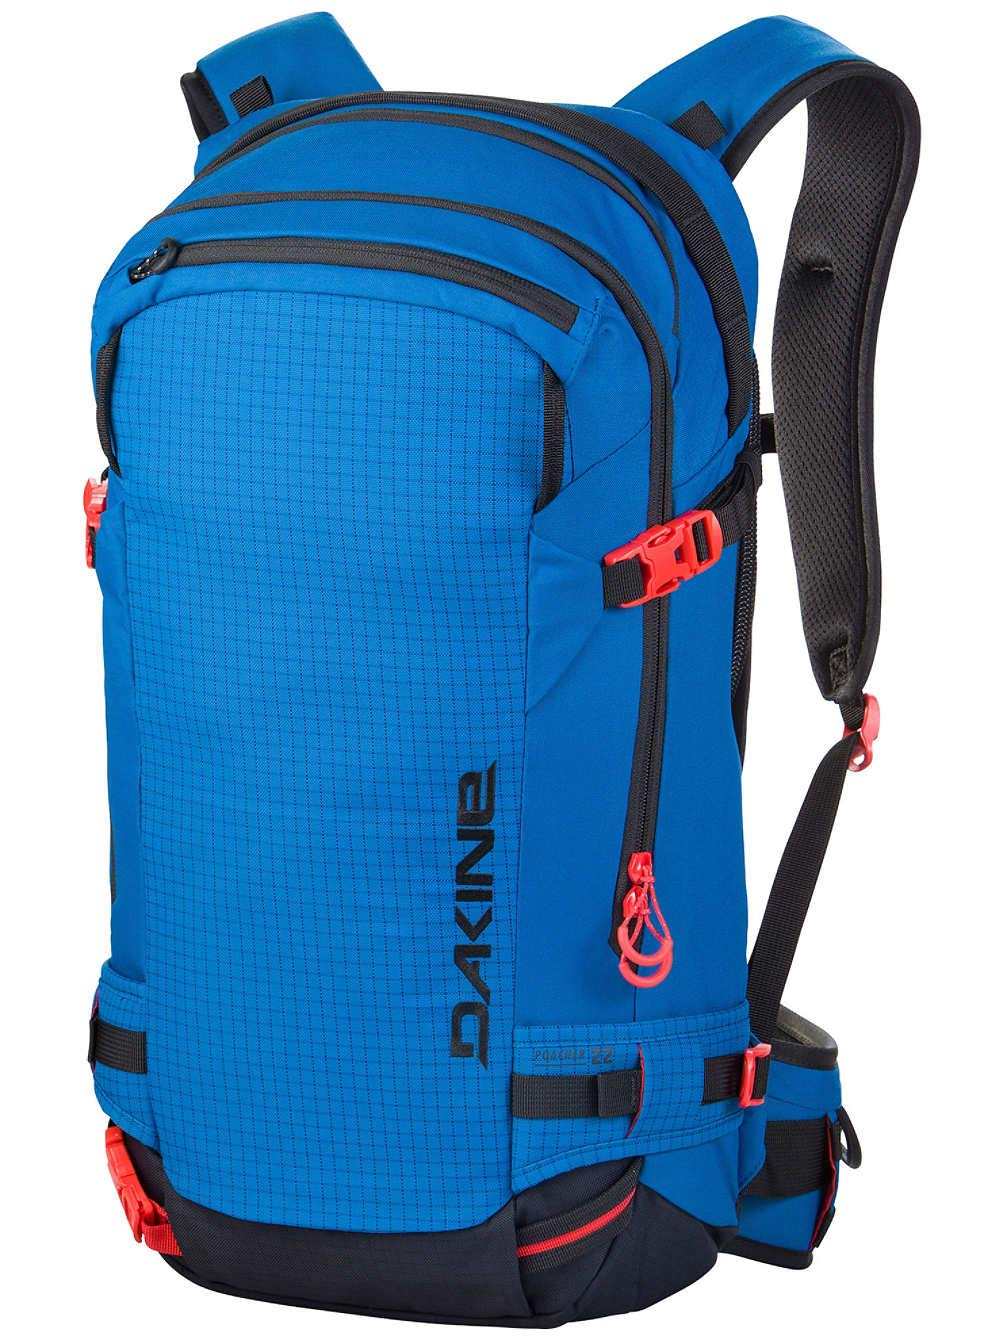 DAKINE Poacher 22L Snow Sport Backpack (Scout)